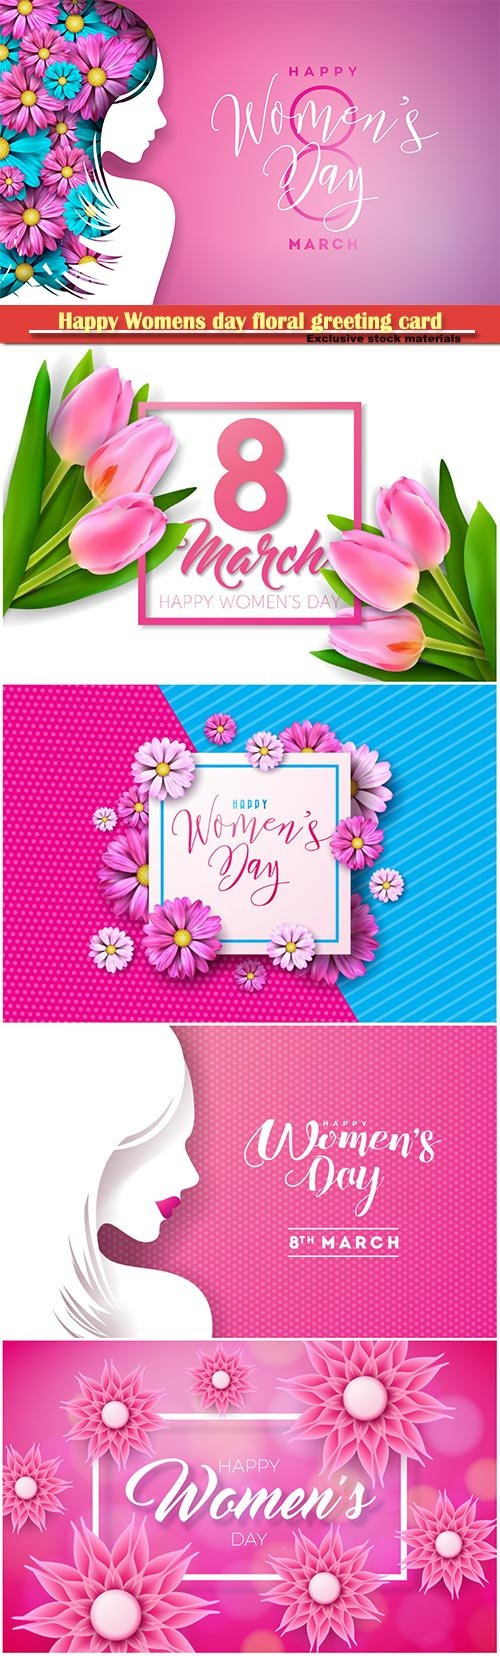 Happy Womens day floral greeting card, international female holiday Illustration, 8 March